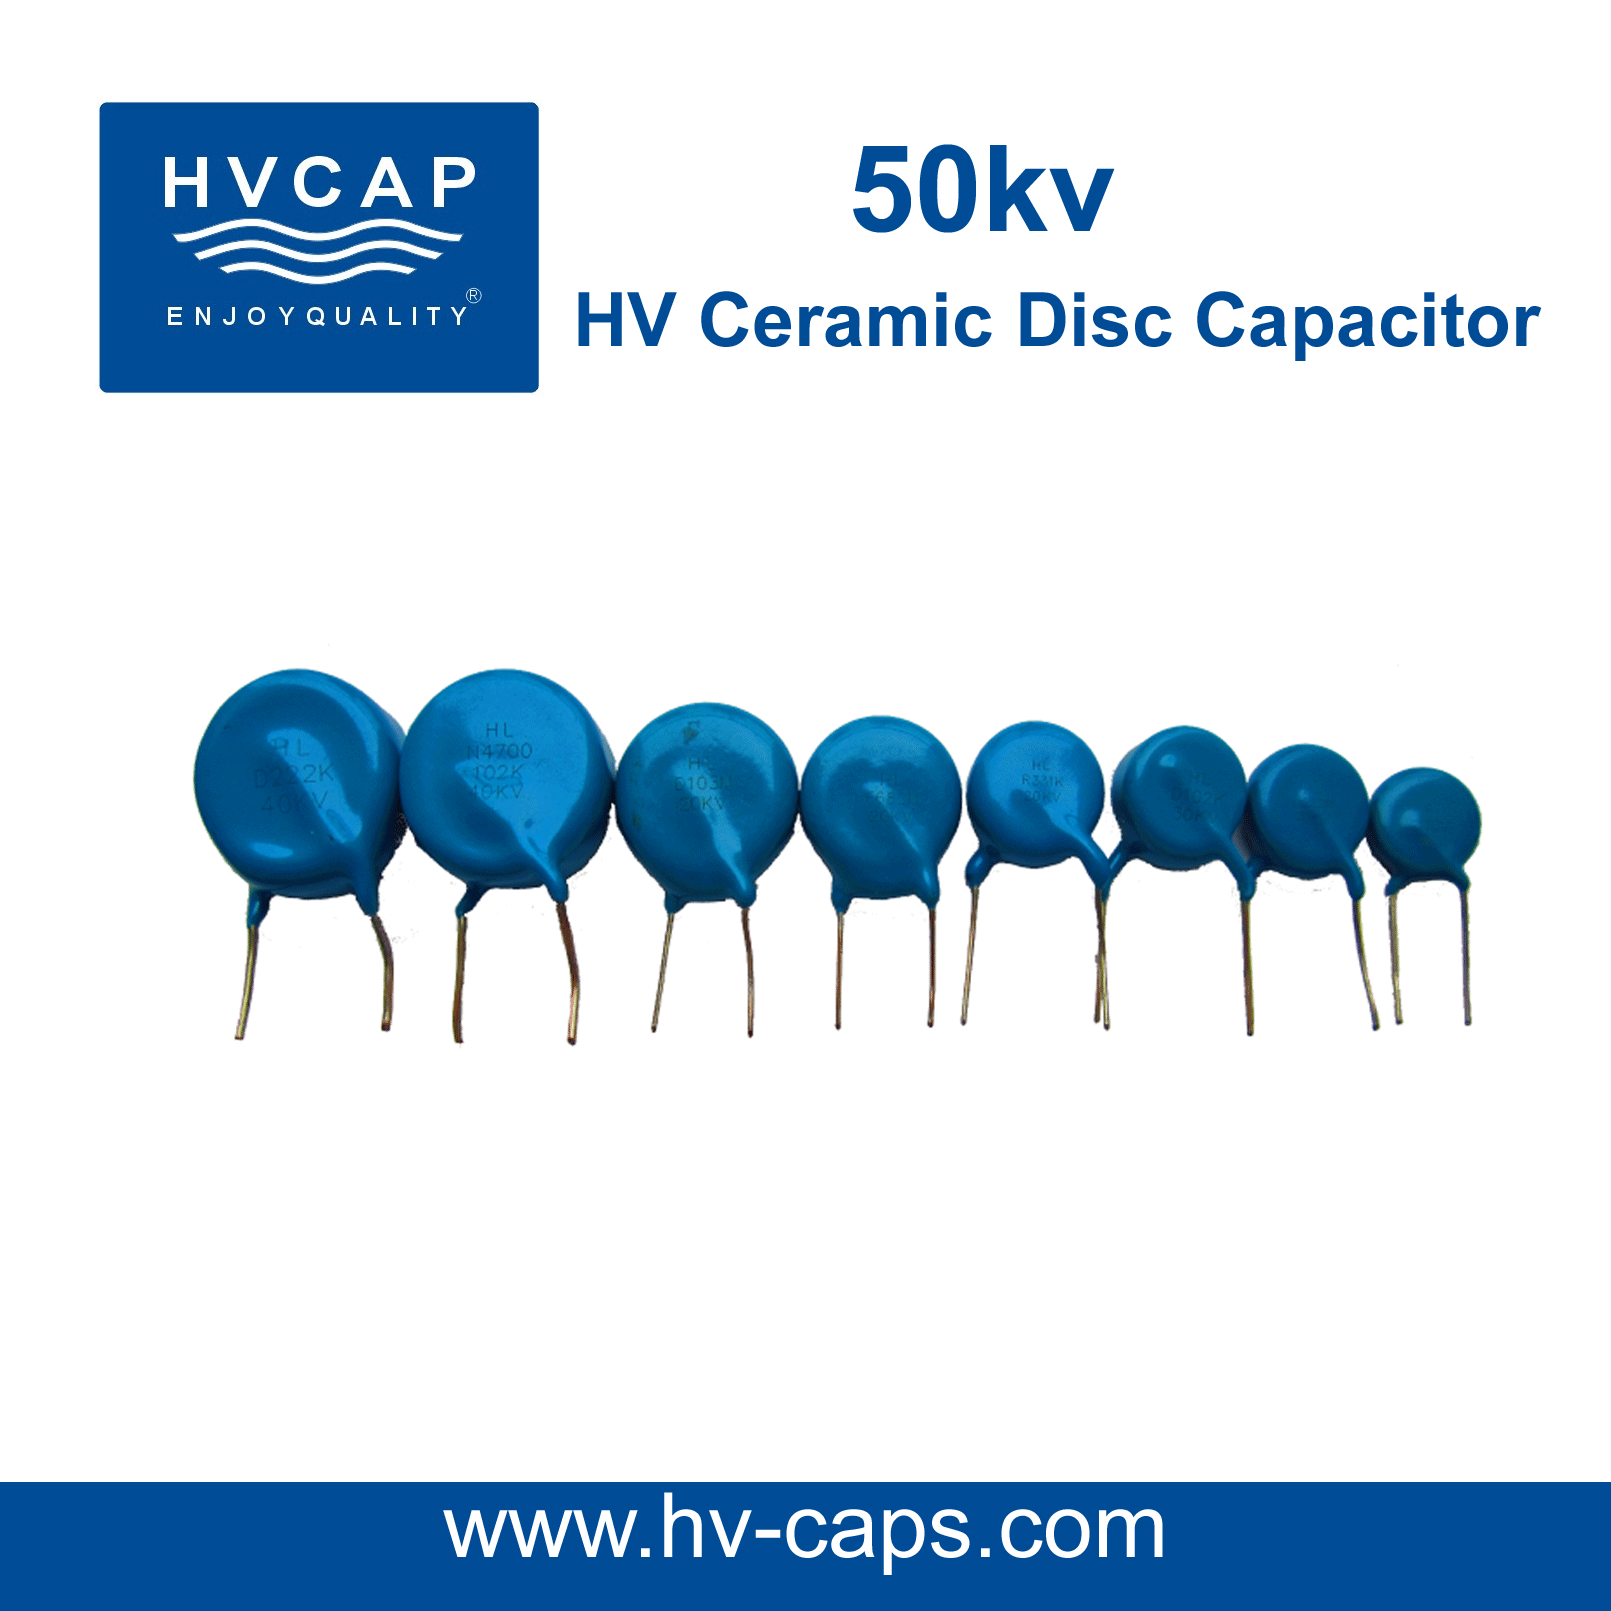 High Voltage Ceramic Capacitor 50kv detail specification.